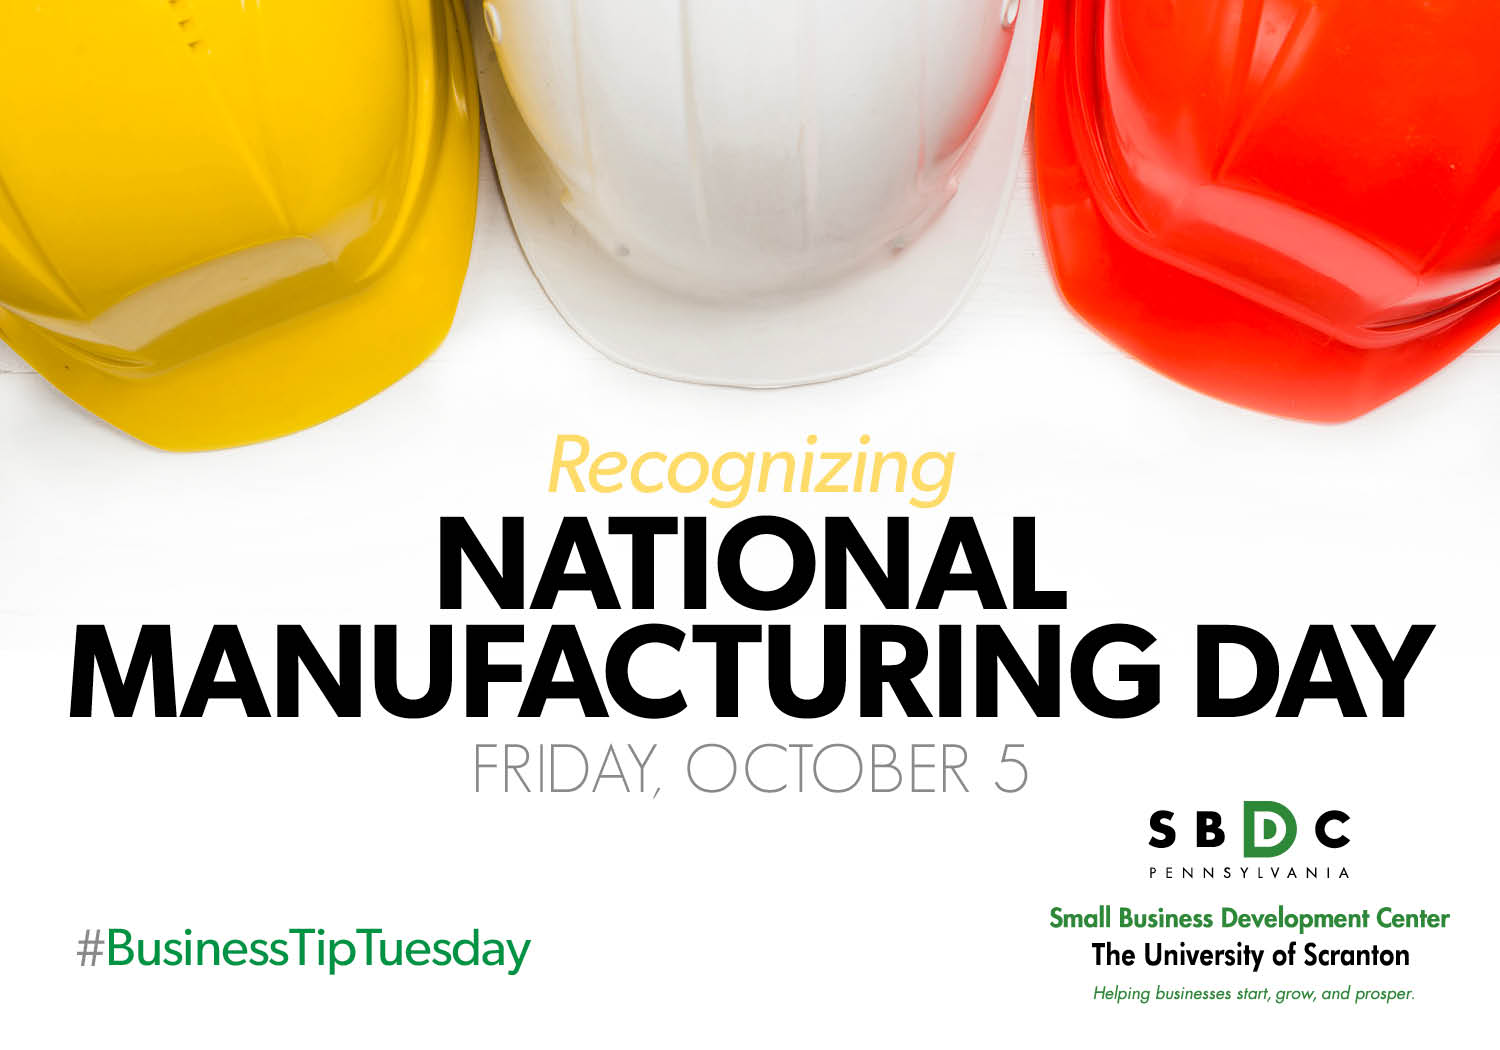 #BusinessTipTuesday – National Manufacturing Day